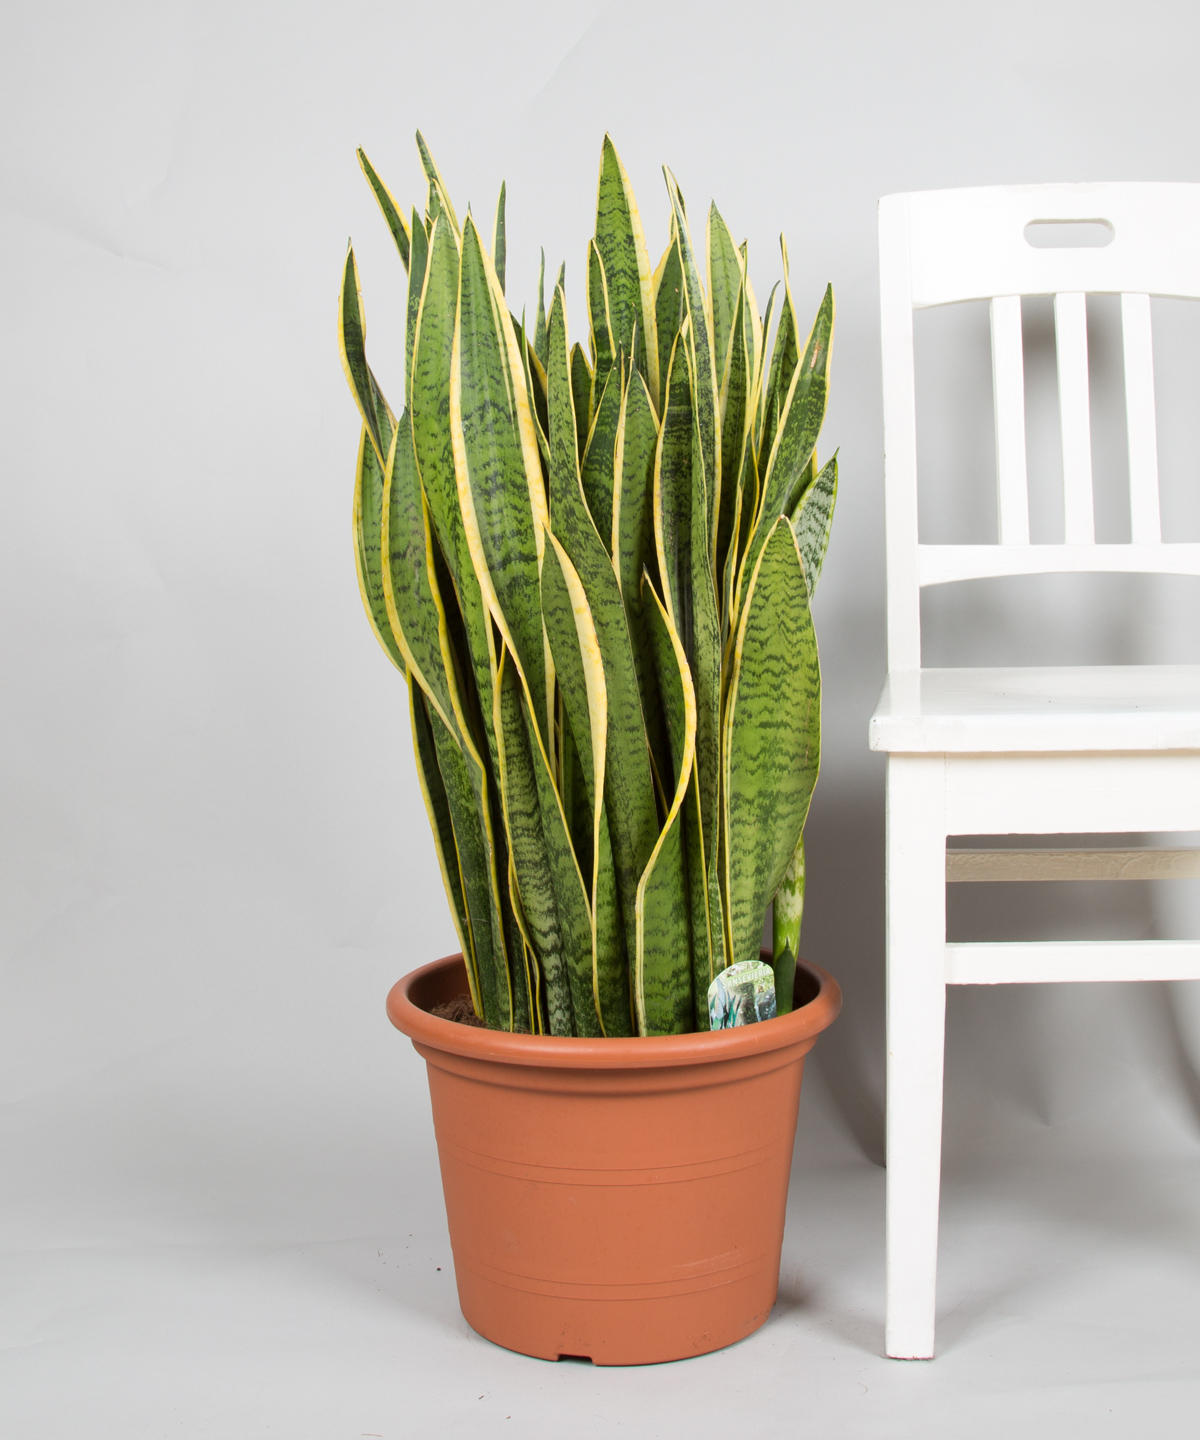 sansevieria laurentii jetzt entdecken 2bloom. Black Bedroom Furniture Sets. Home Design Ideas